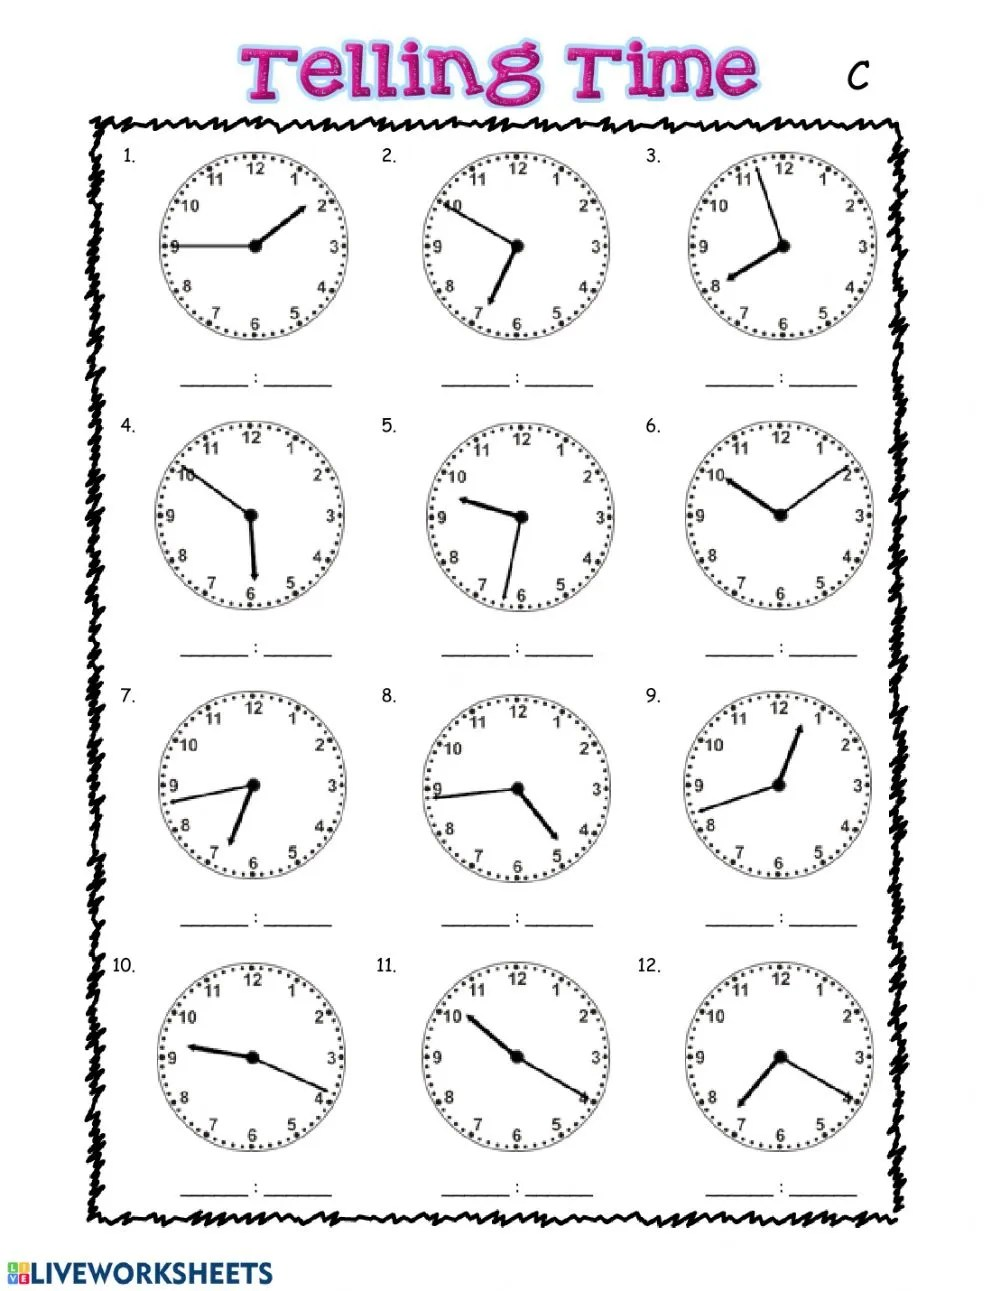 hight resolution of Telling Time interactive worksheet for grade 3